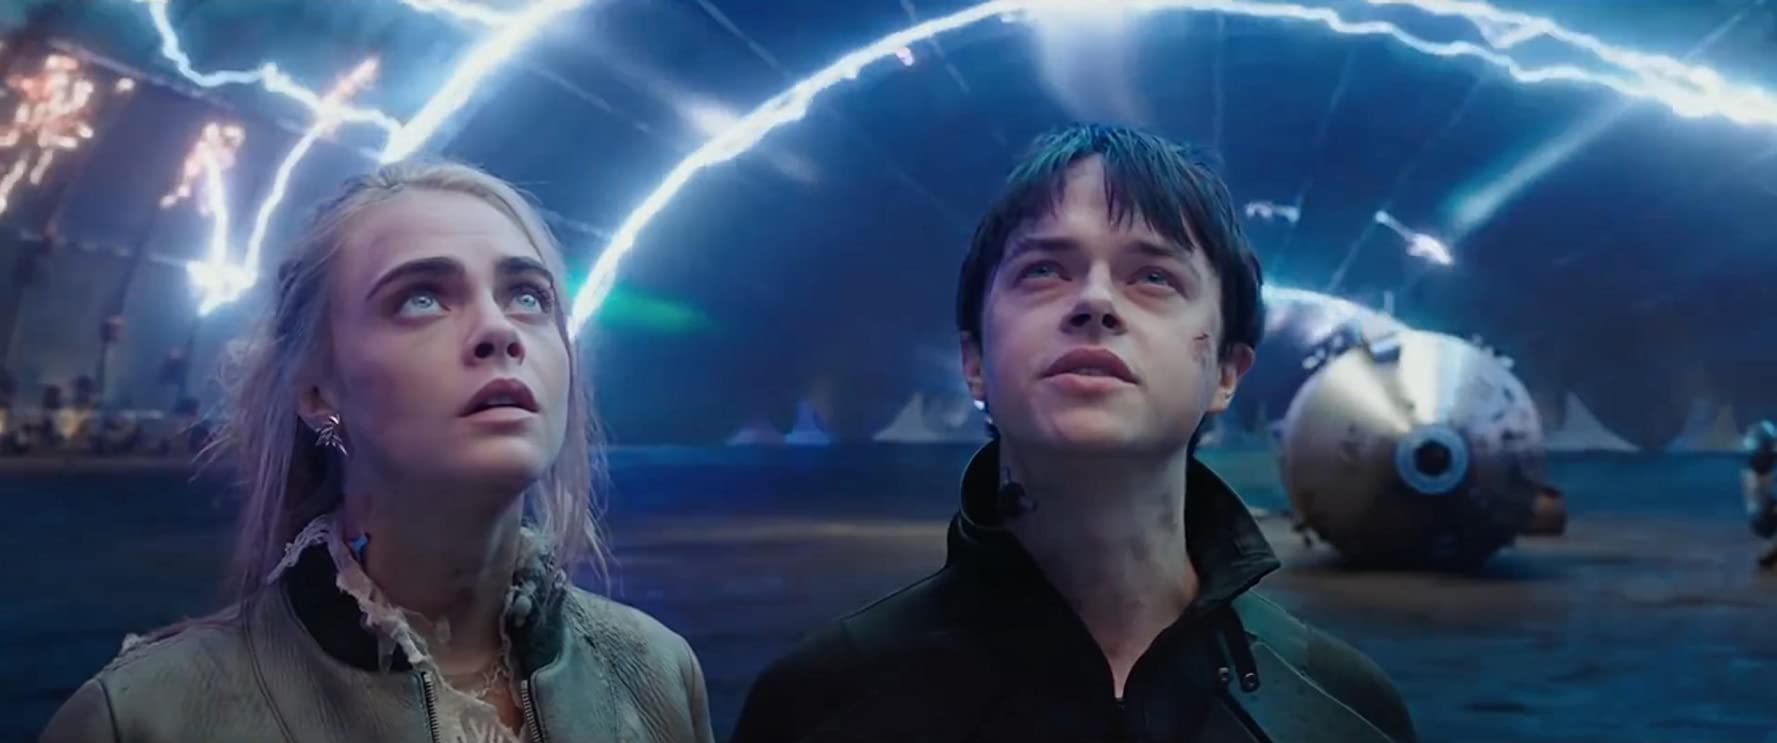 Dane DeHaan and Cara Delevingne in Valerian and the City of a Thousand Planets (2017)